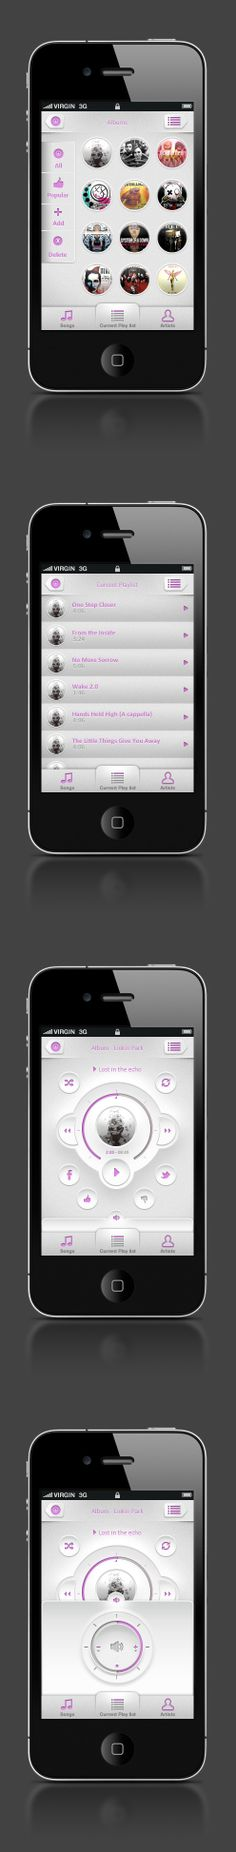 Music Player Application - Personal Project by Ernest Gerber, via Behance